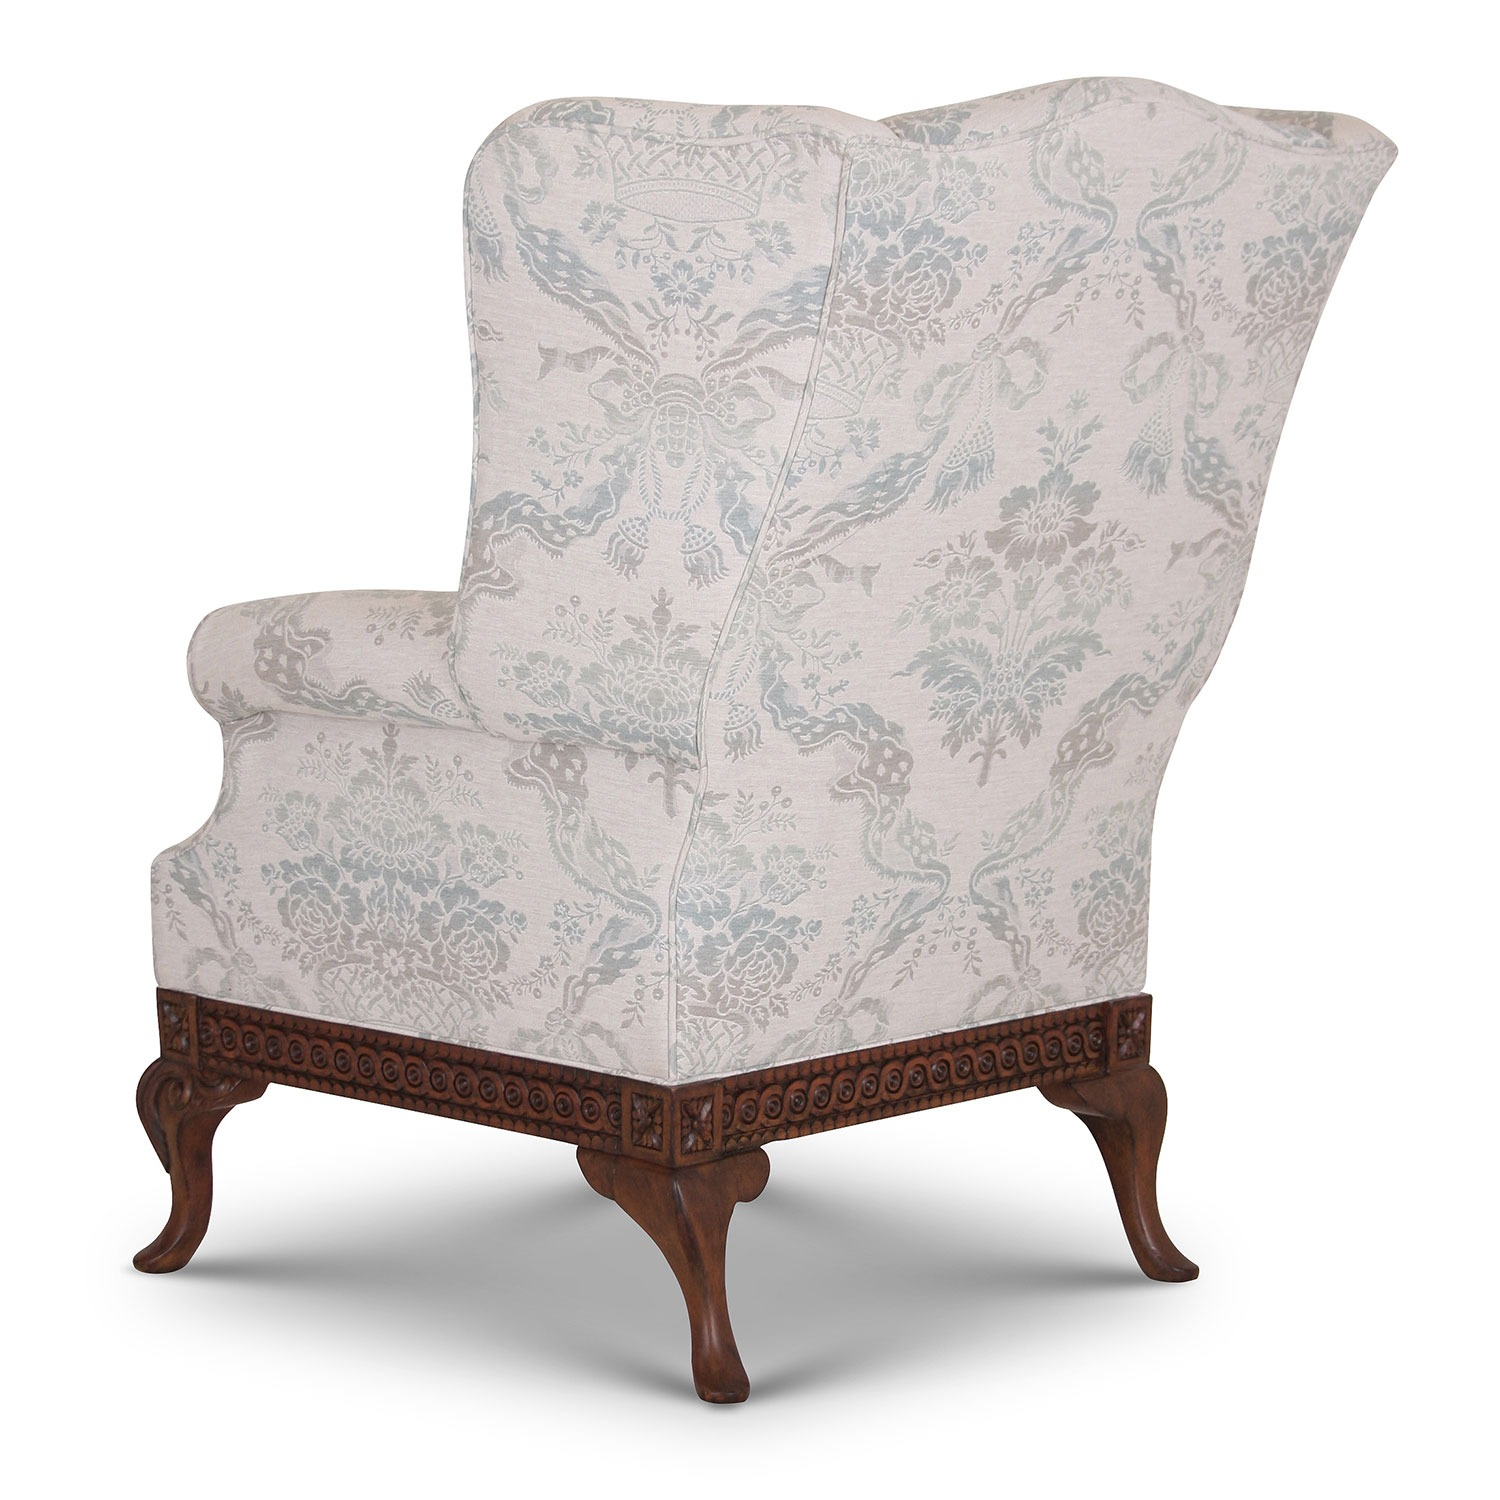 Pride Regency style wing chair in Moloko